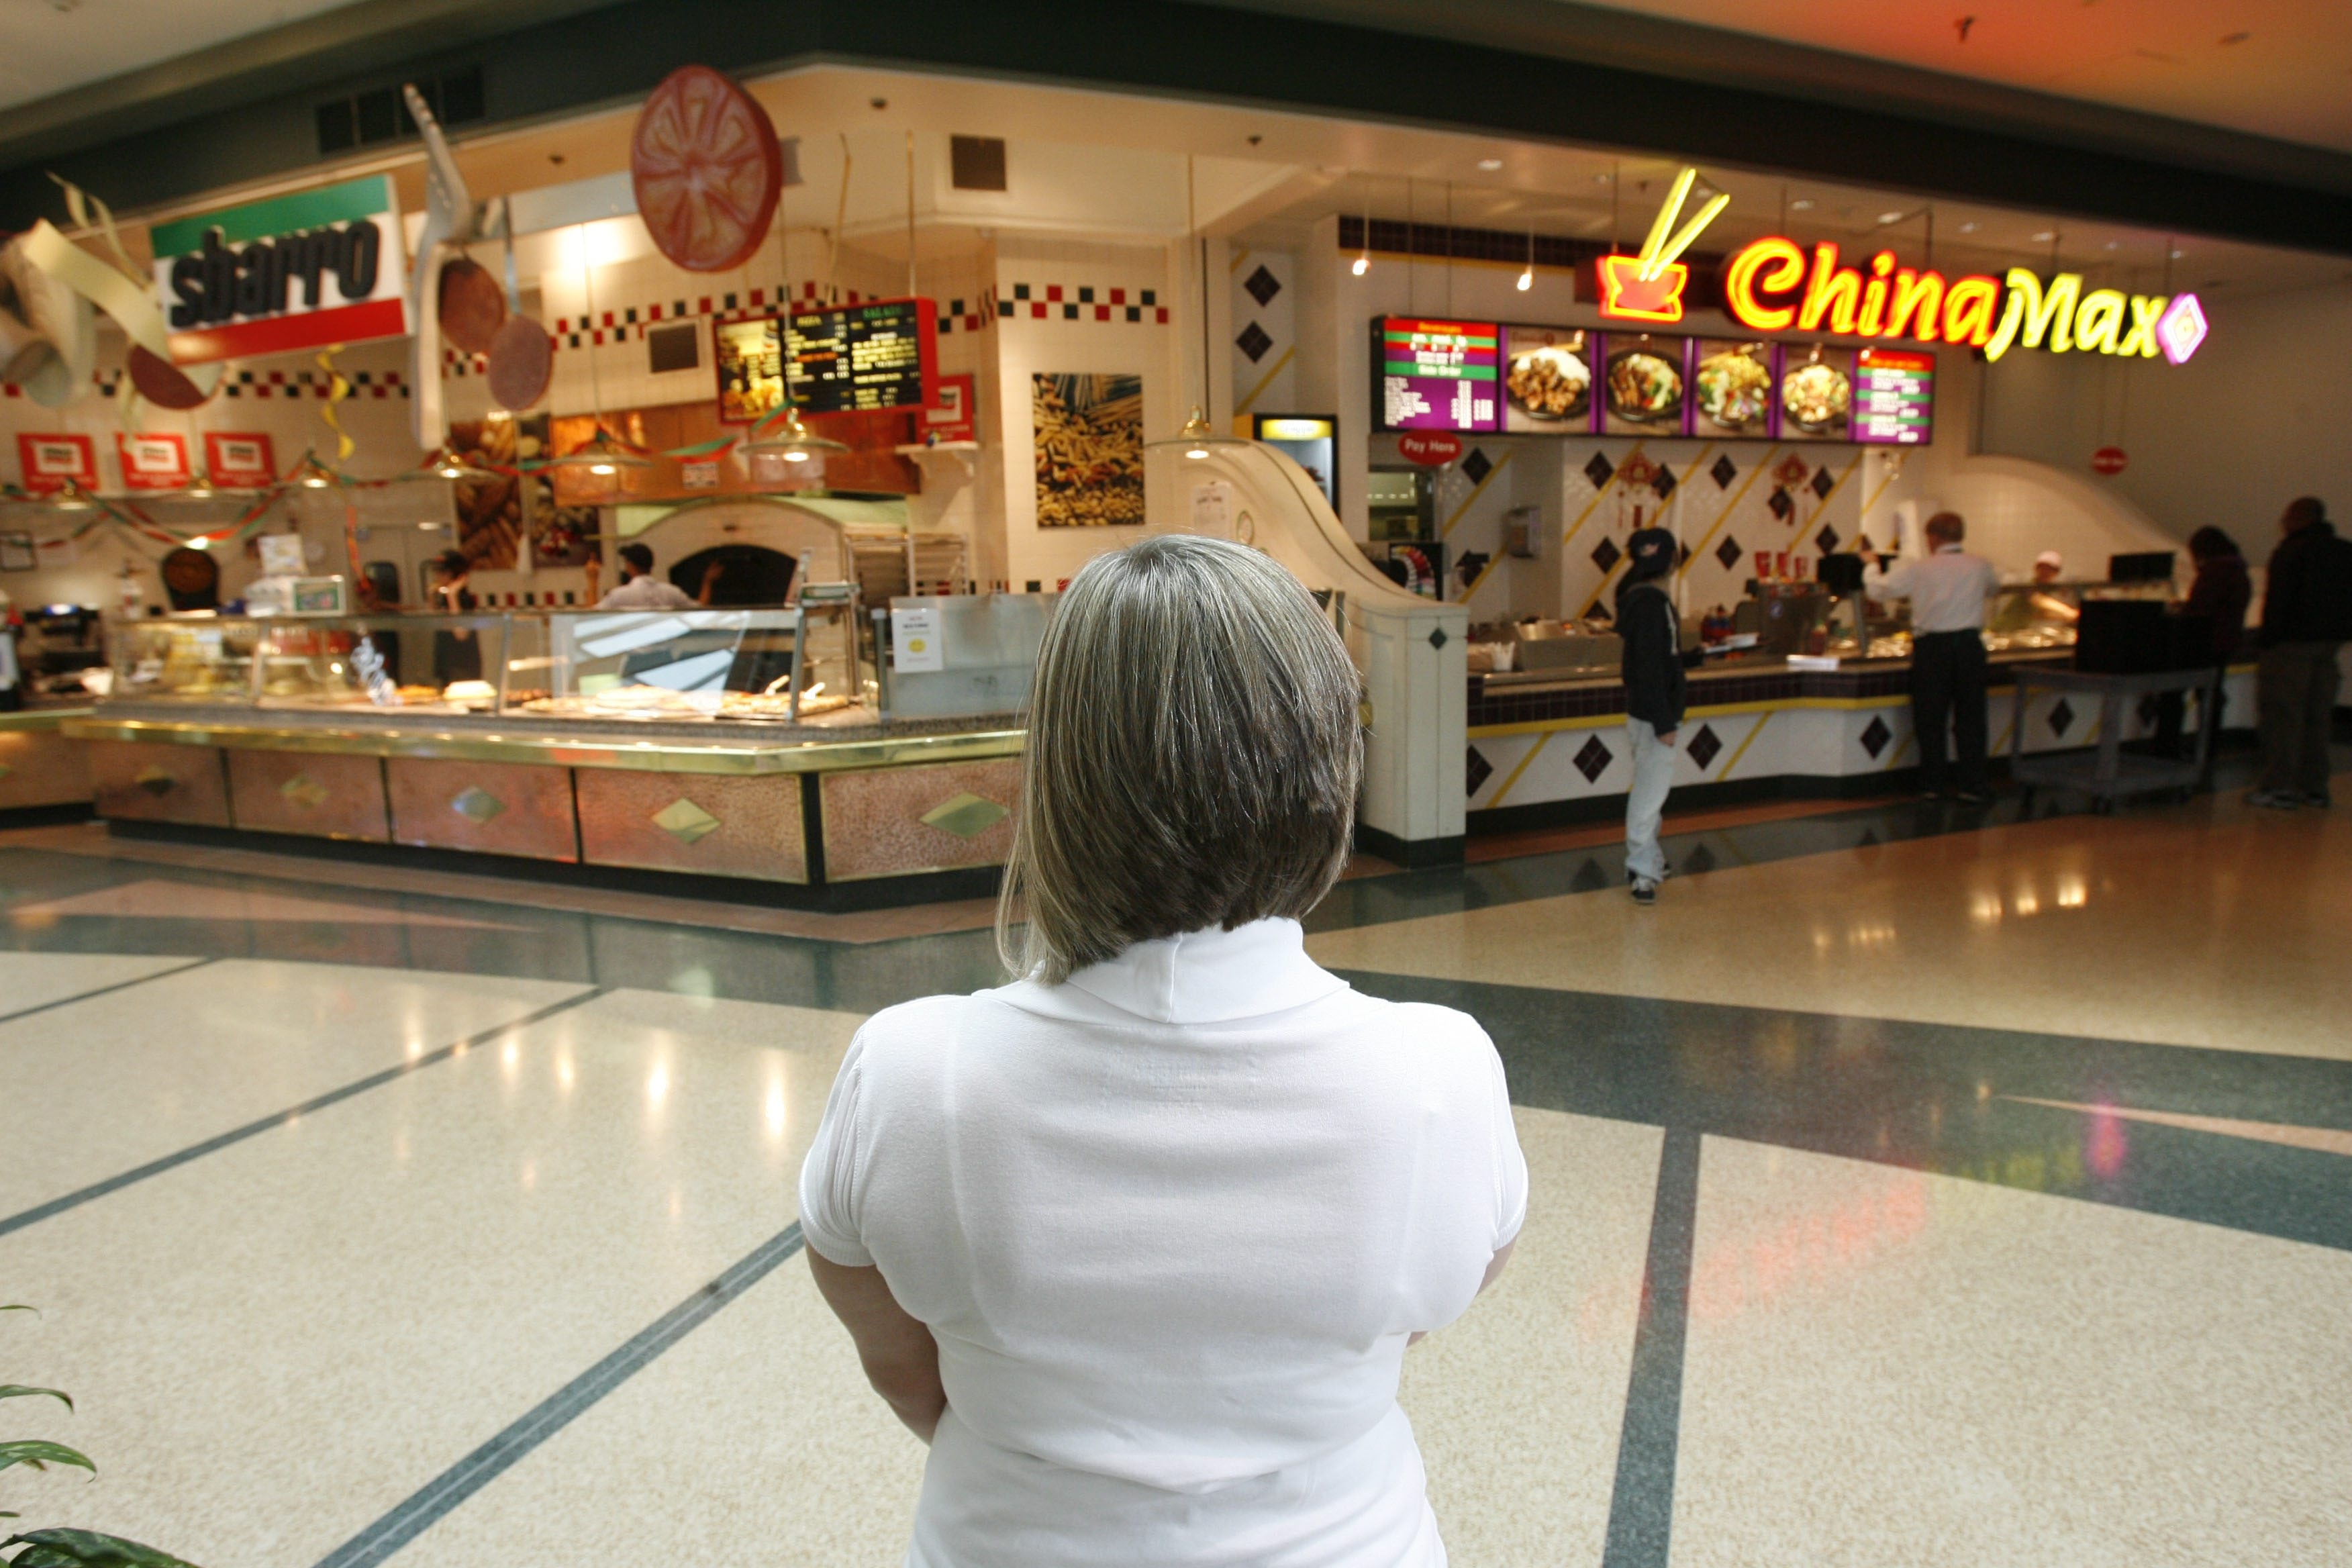 A Dick's Sporting Goods store could replace the  food court at the Boulevard Mall, seen here in a photo illustration composed in 2009.